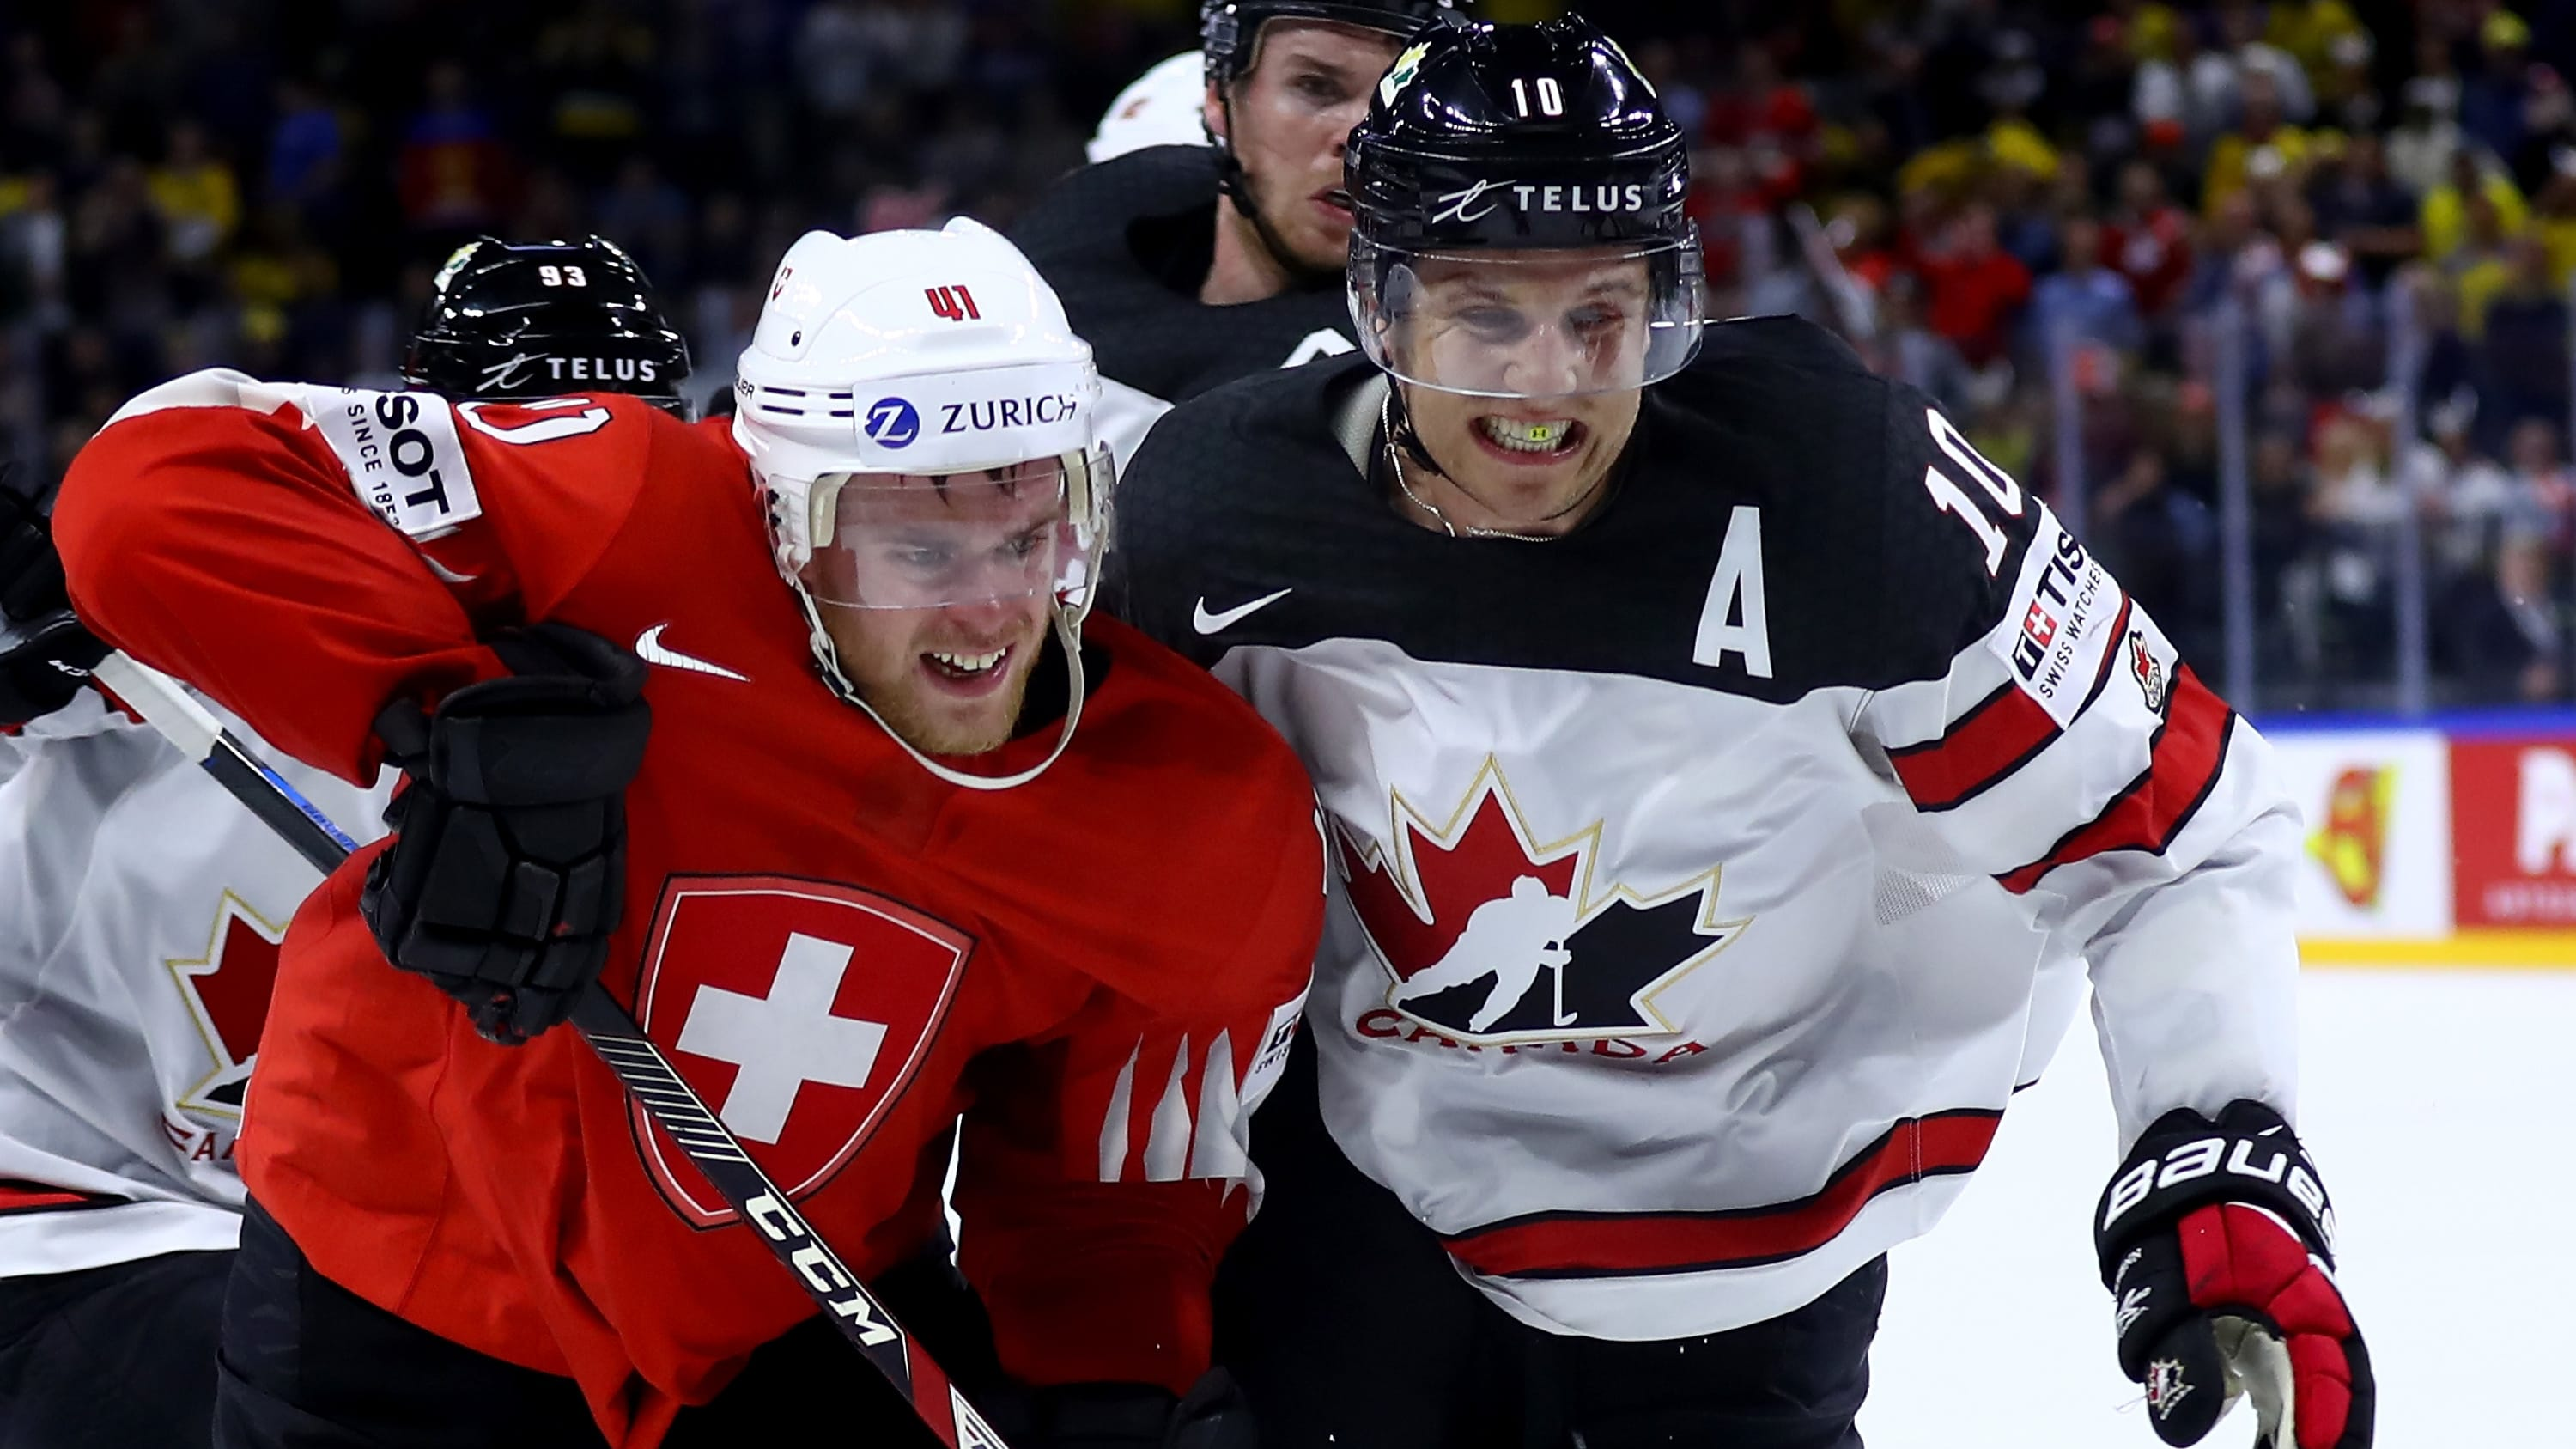 COPENHAGEN, DENMARK - MAY 19 :Bryaden Schenn #10 of Canada and Mirco Muller of Switzerland battle for position during the 2018 IIHF Ice Hockey World Championship Semi Final game between Canada and Switzerland at Royal Arena on May 19, 2018 in Copenhagen, Denmark. (Photo by Martin Rose/Getty Images)